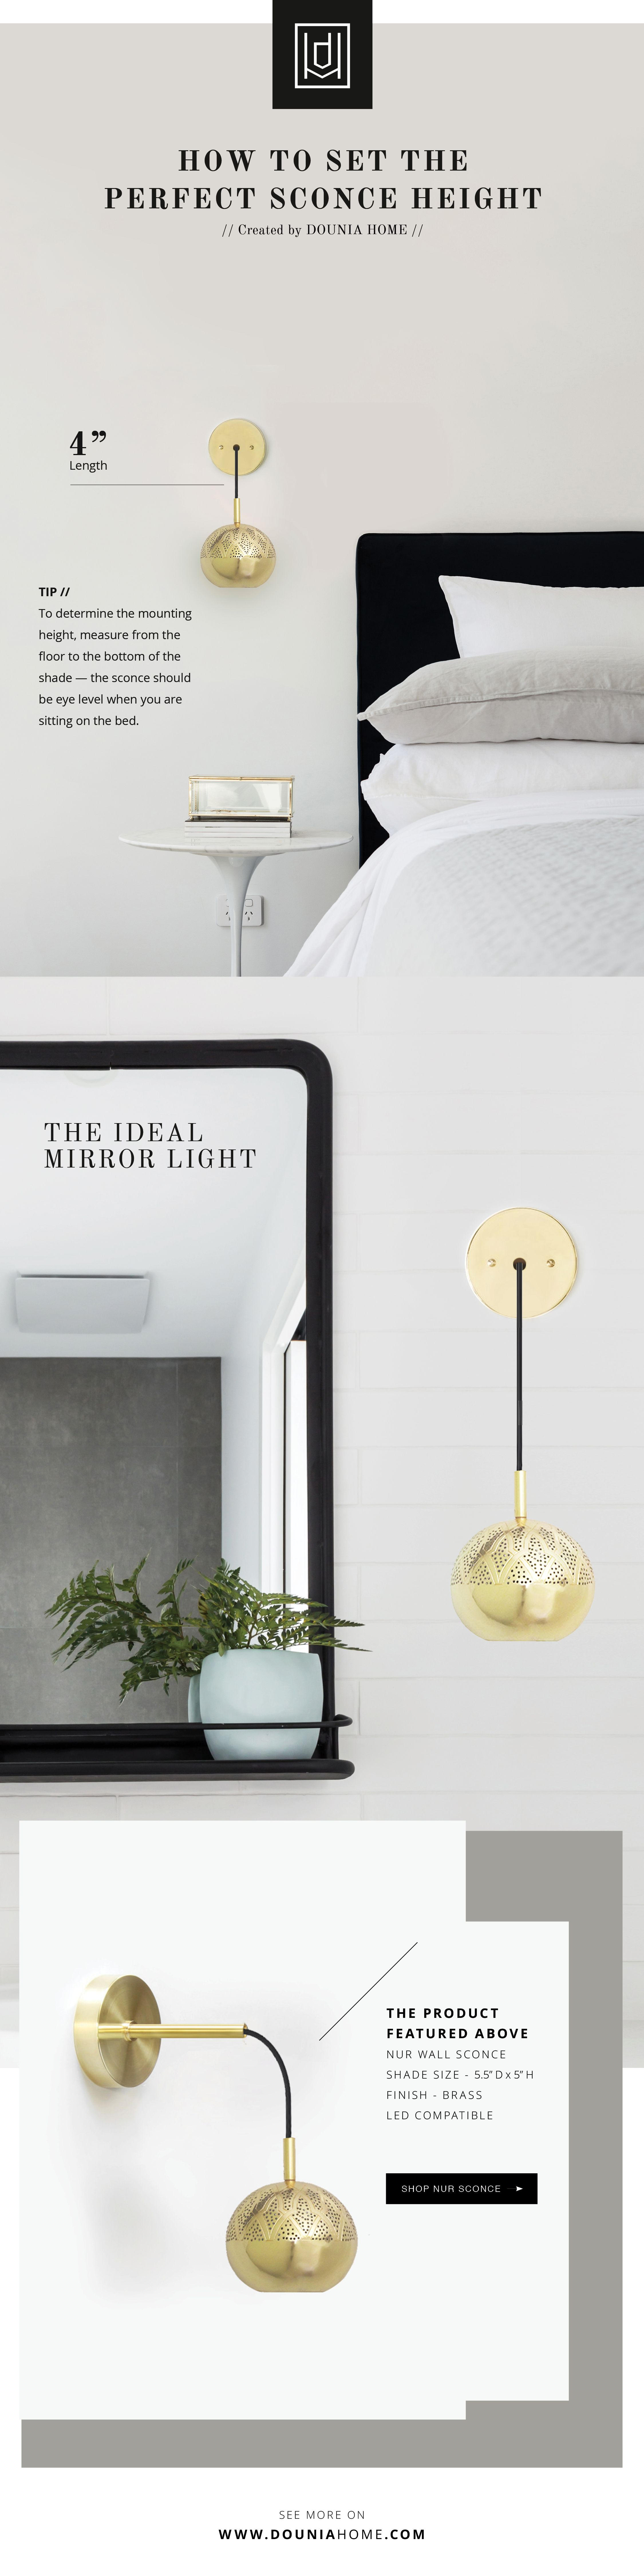 Pro Tips // How to Set the Perfect Sconce Height   Sconces ... on Height Of Bathroom Sconce Lights id=99697